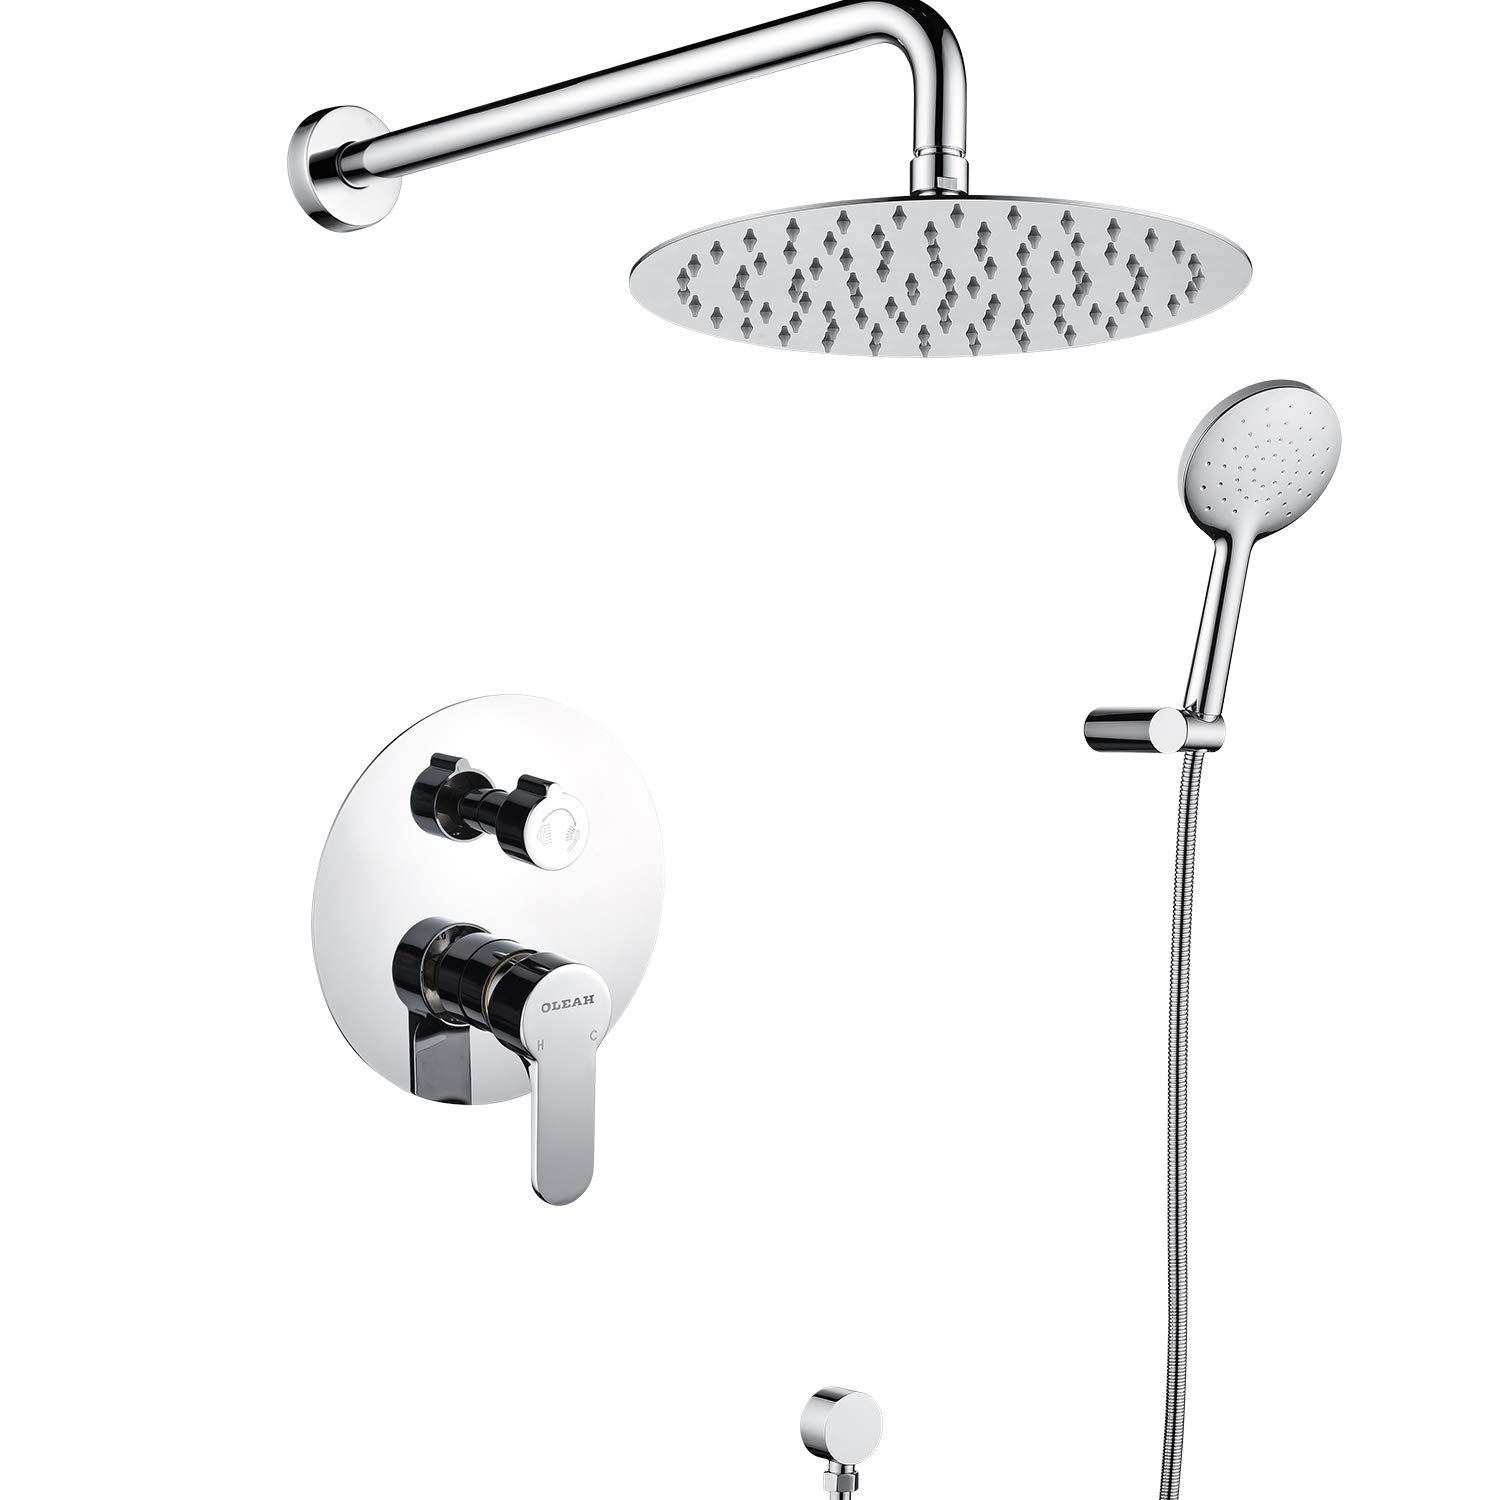 Oleah Bathroom Shower System Dual Head Set Wall Mount Shower Faucet With Rainfall Shower And Handheld Show Bathroom Shower Systems Shower Systems Shower Faucet [ 1500 x 1500 Pixel ]